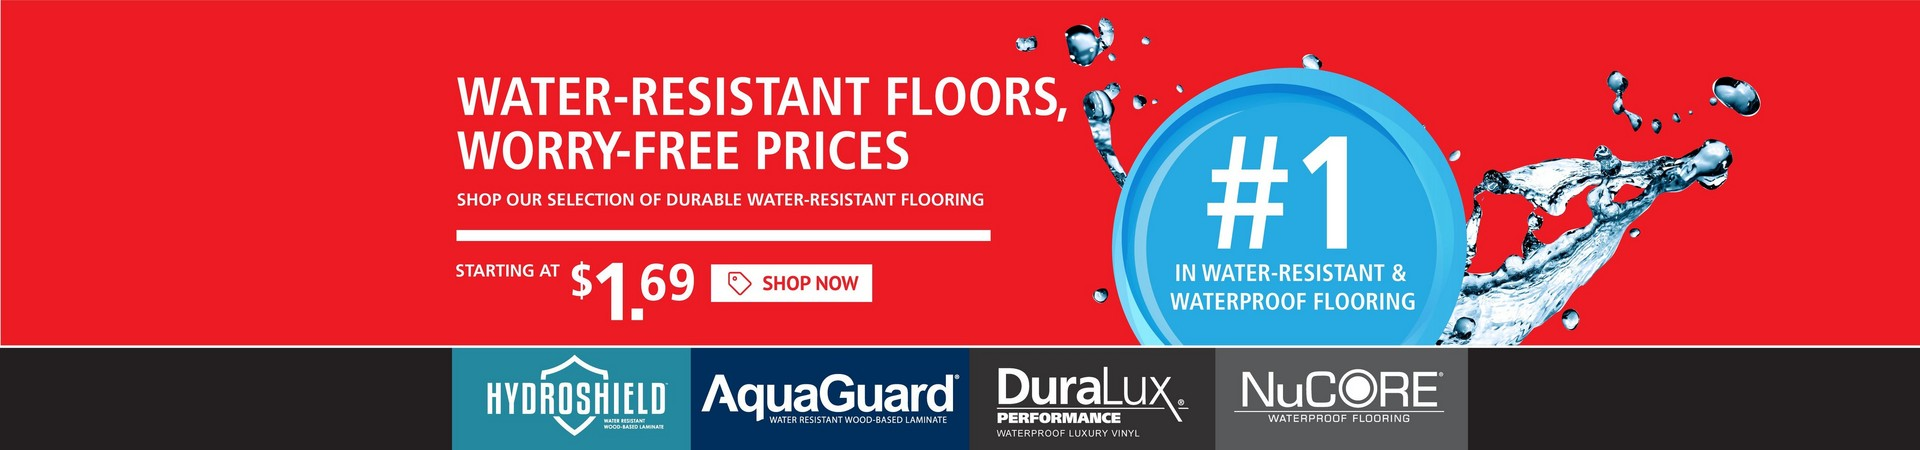 WATER-RESISTANT FLOORS